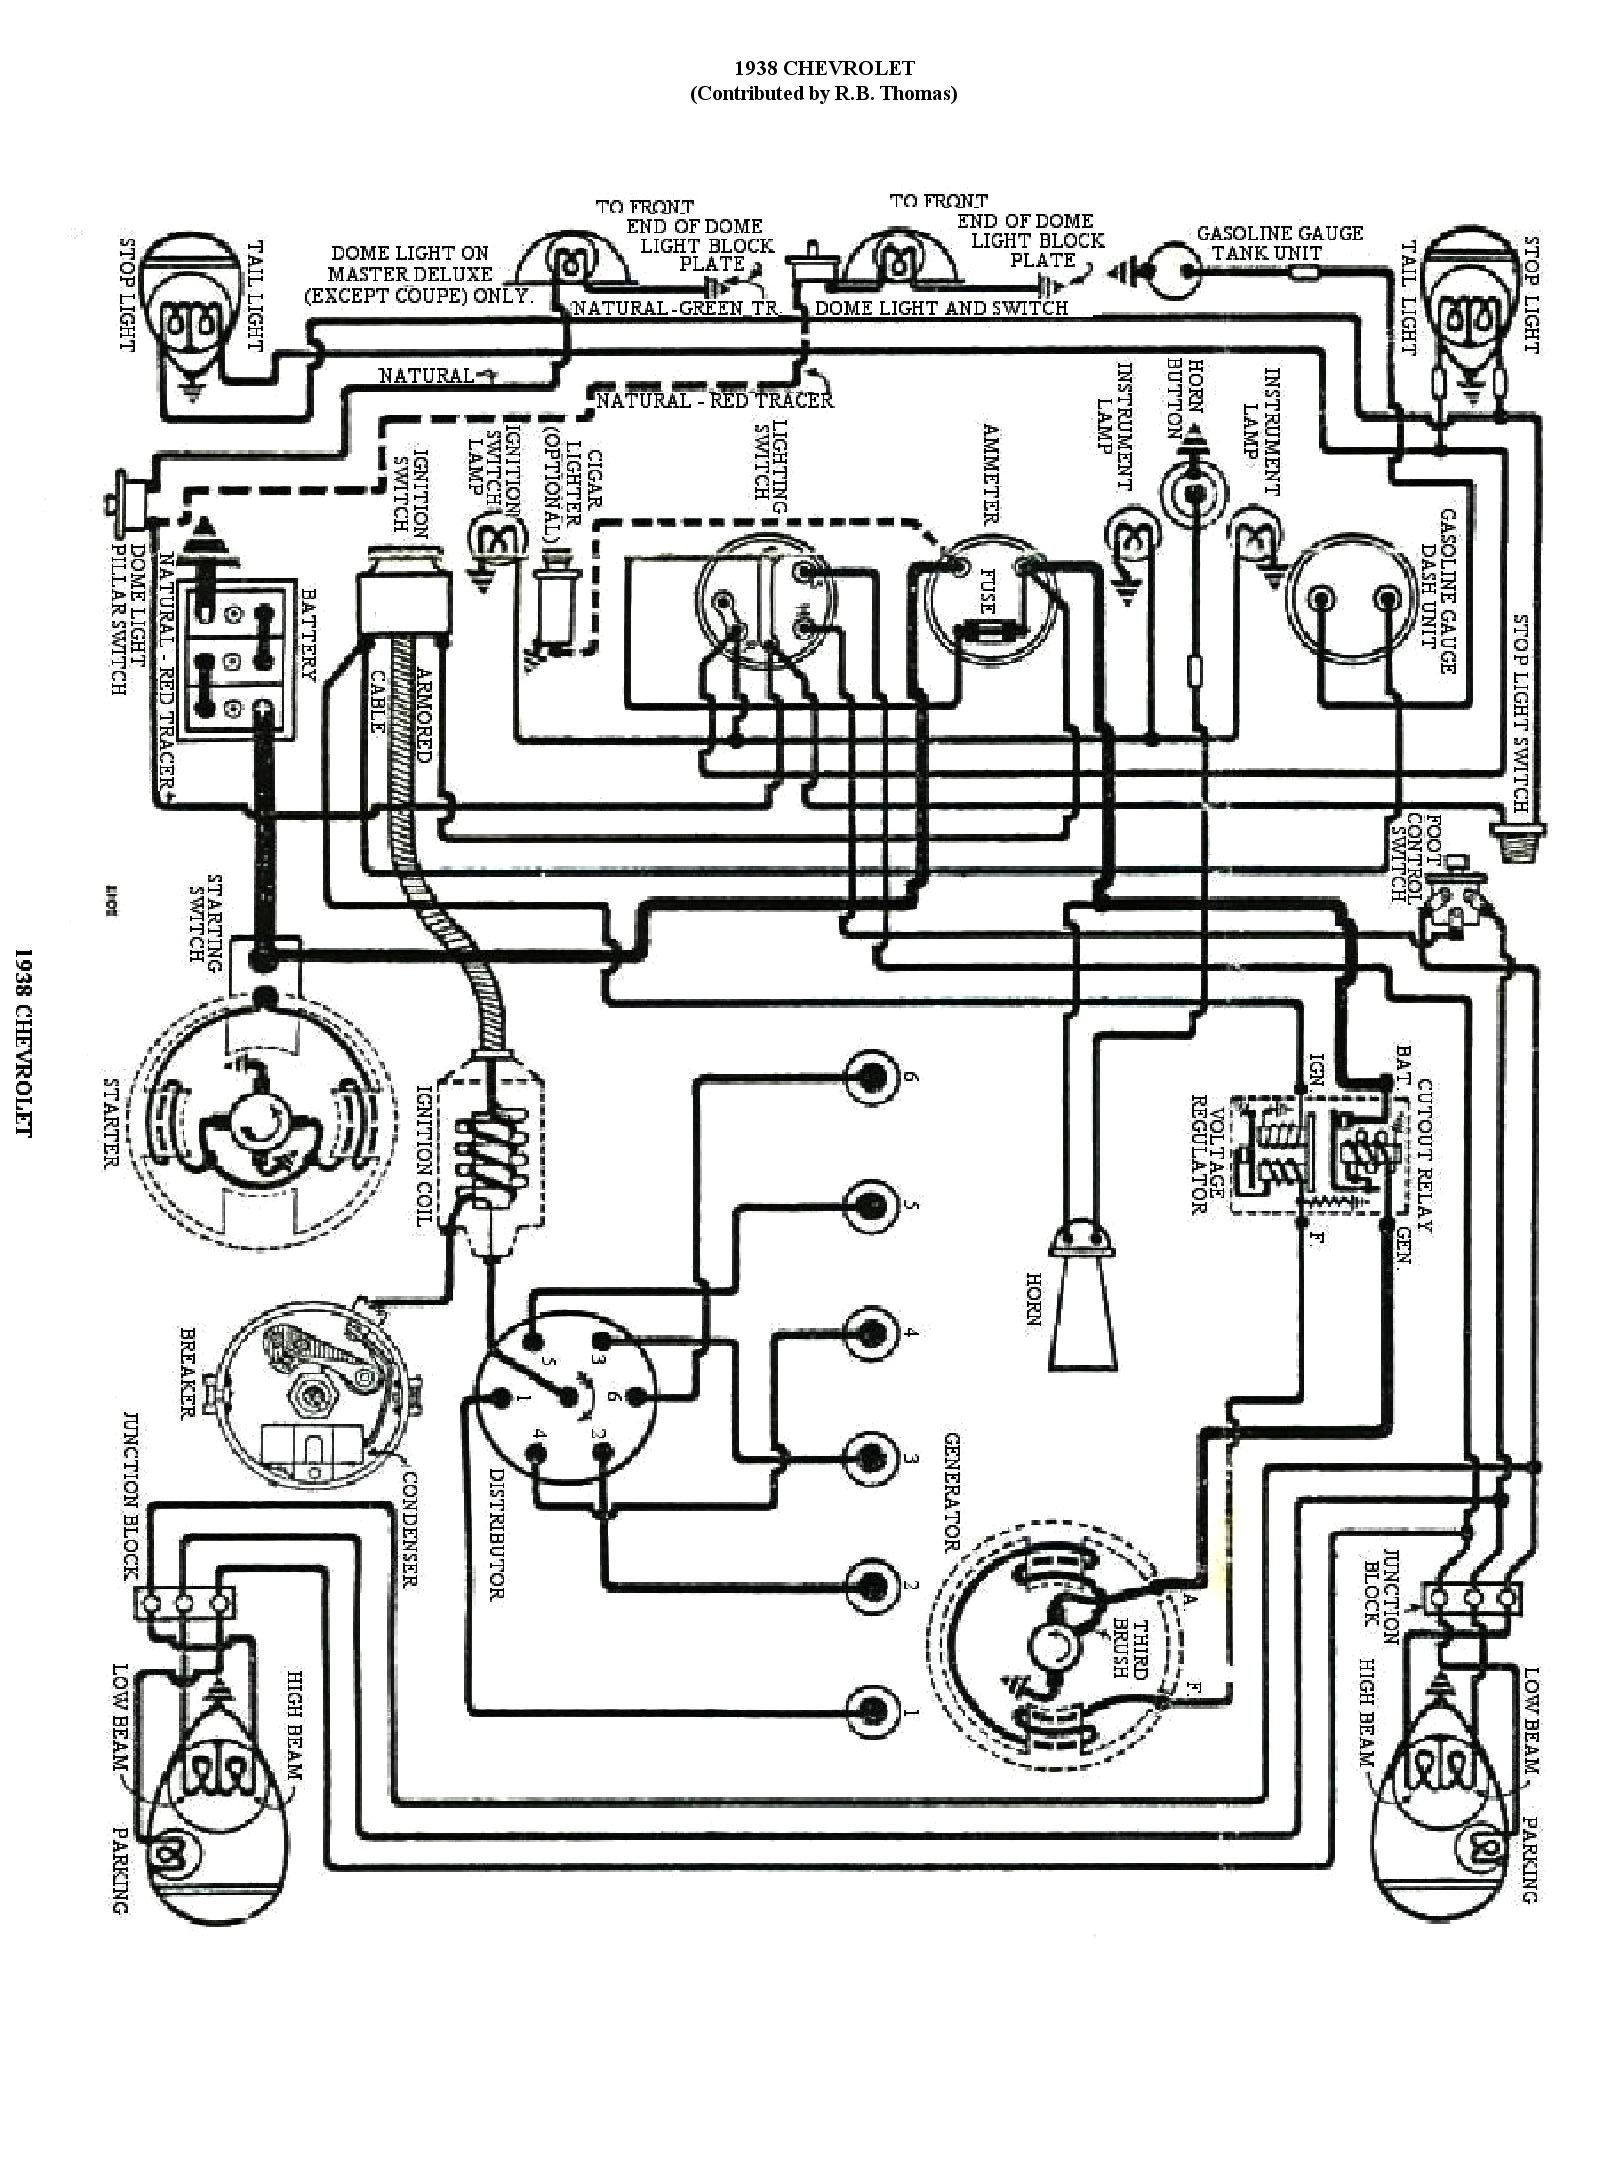 Wiring on 1938 chevy wiring diagram